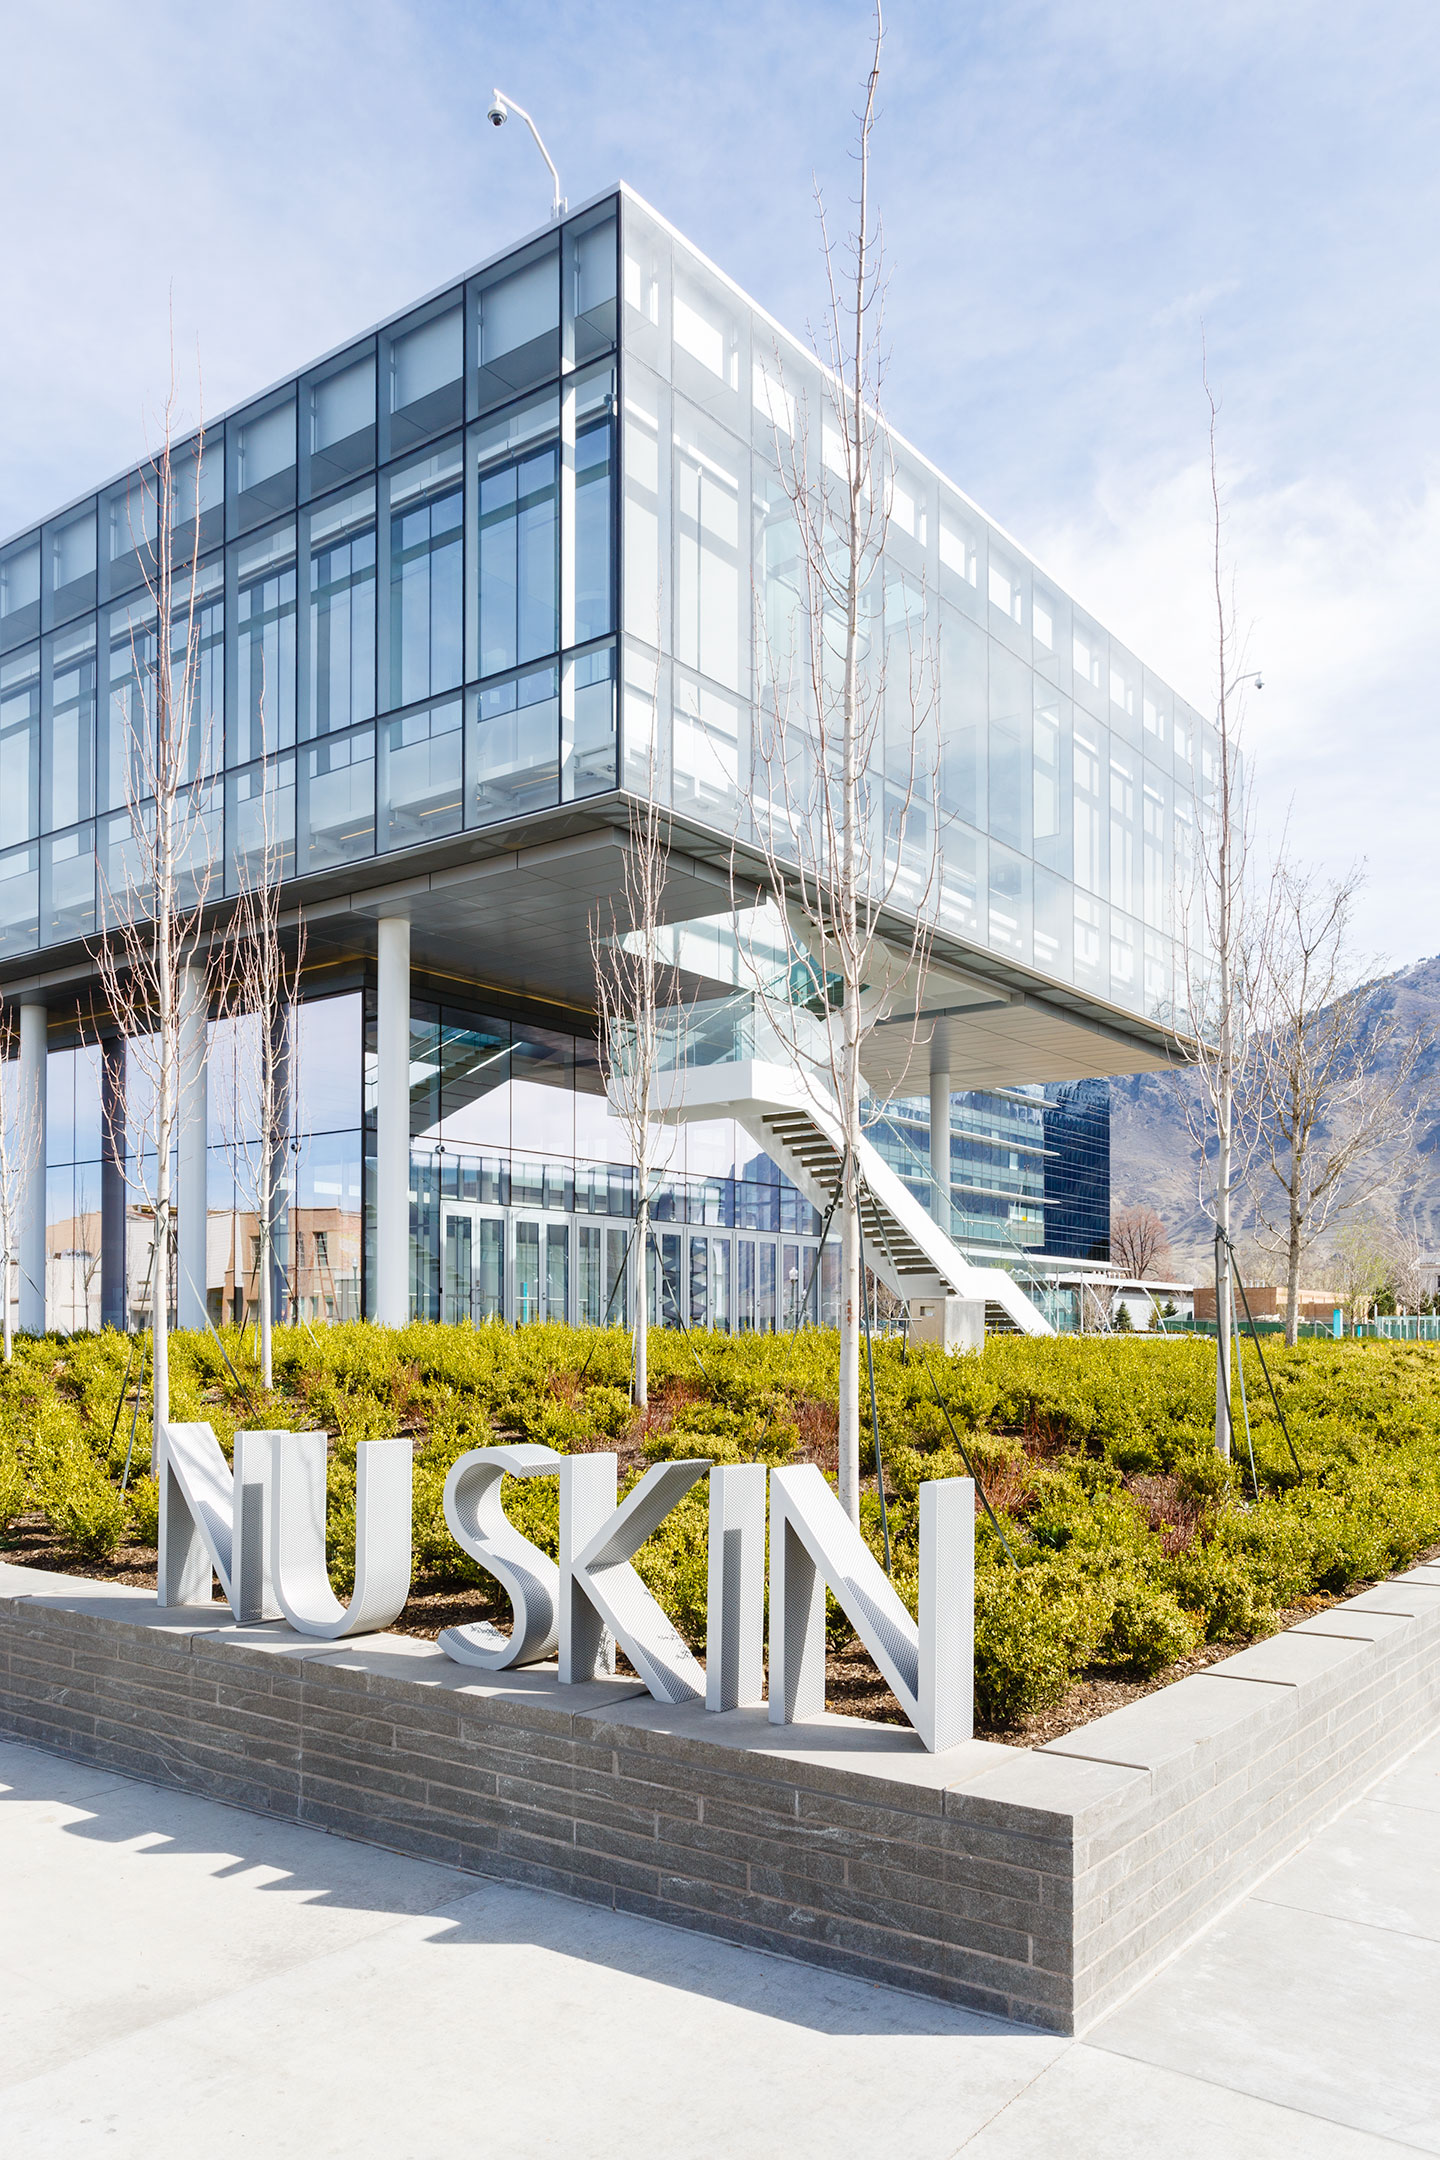 Architecture Photography for a company in Provo